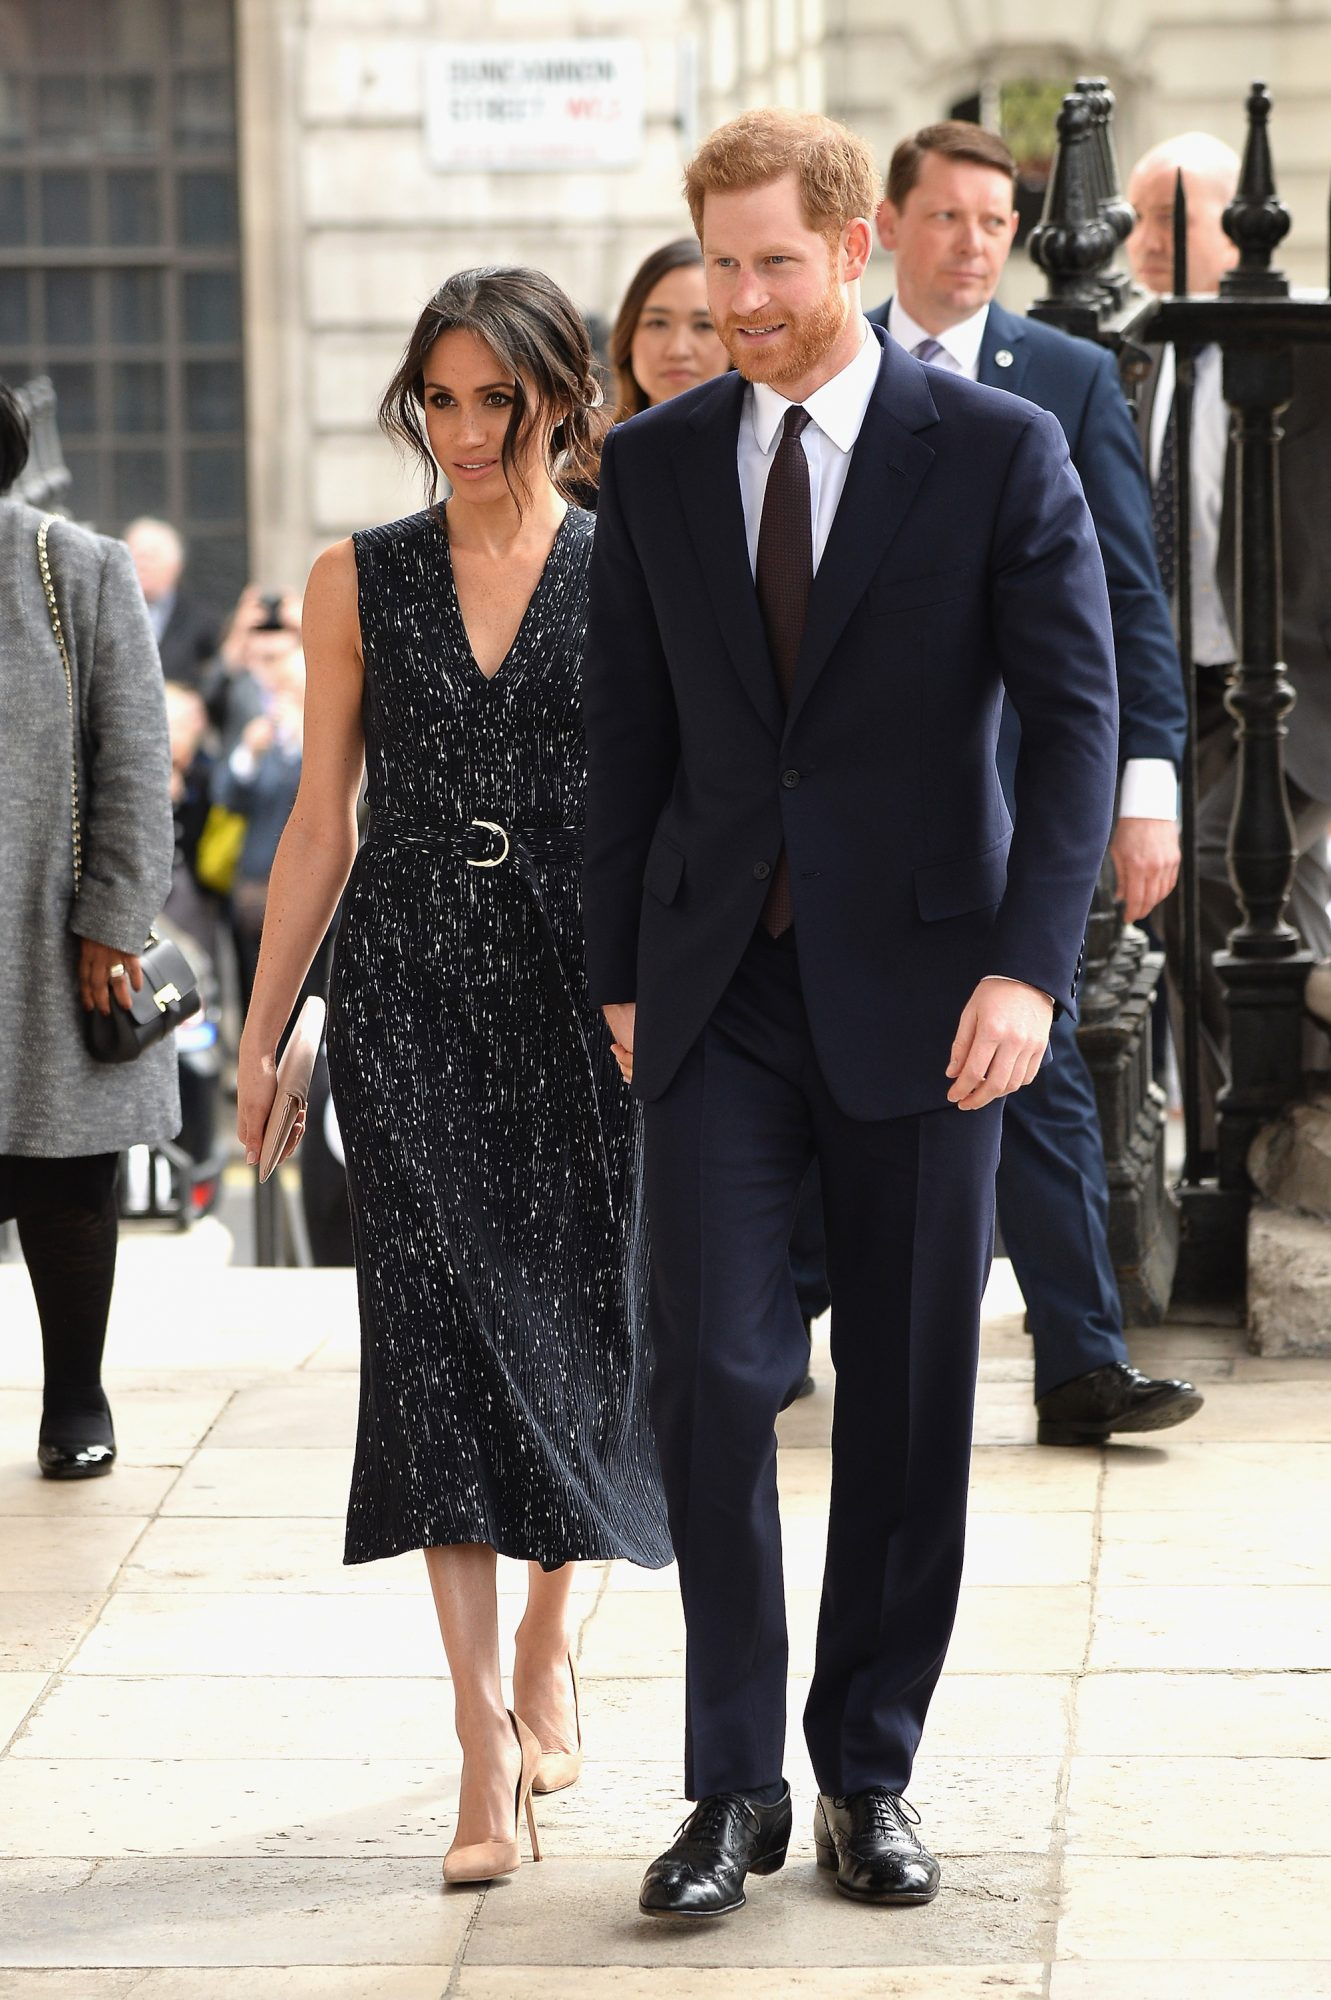 Prince Louis godparents lead